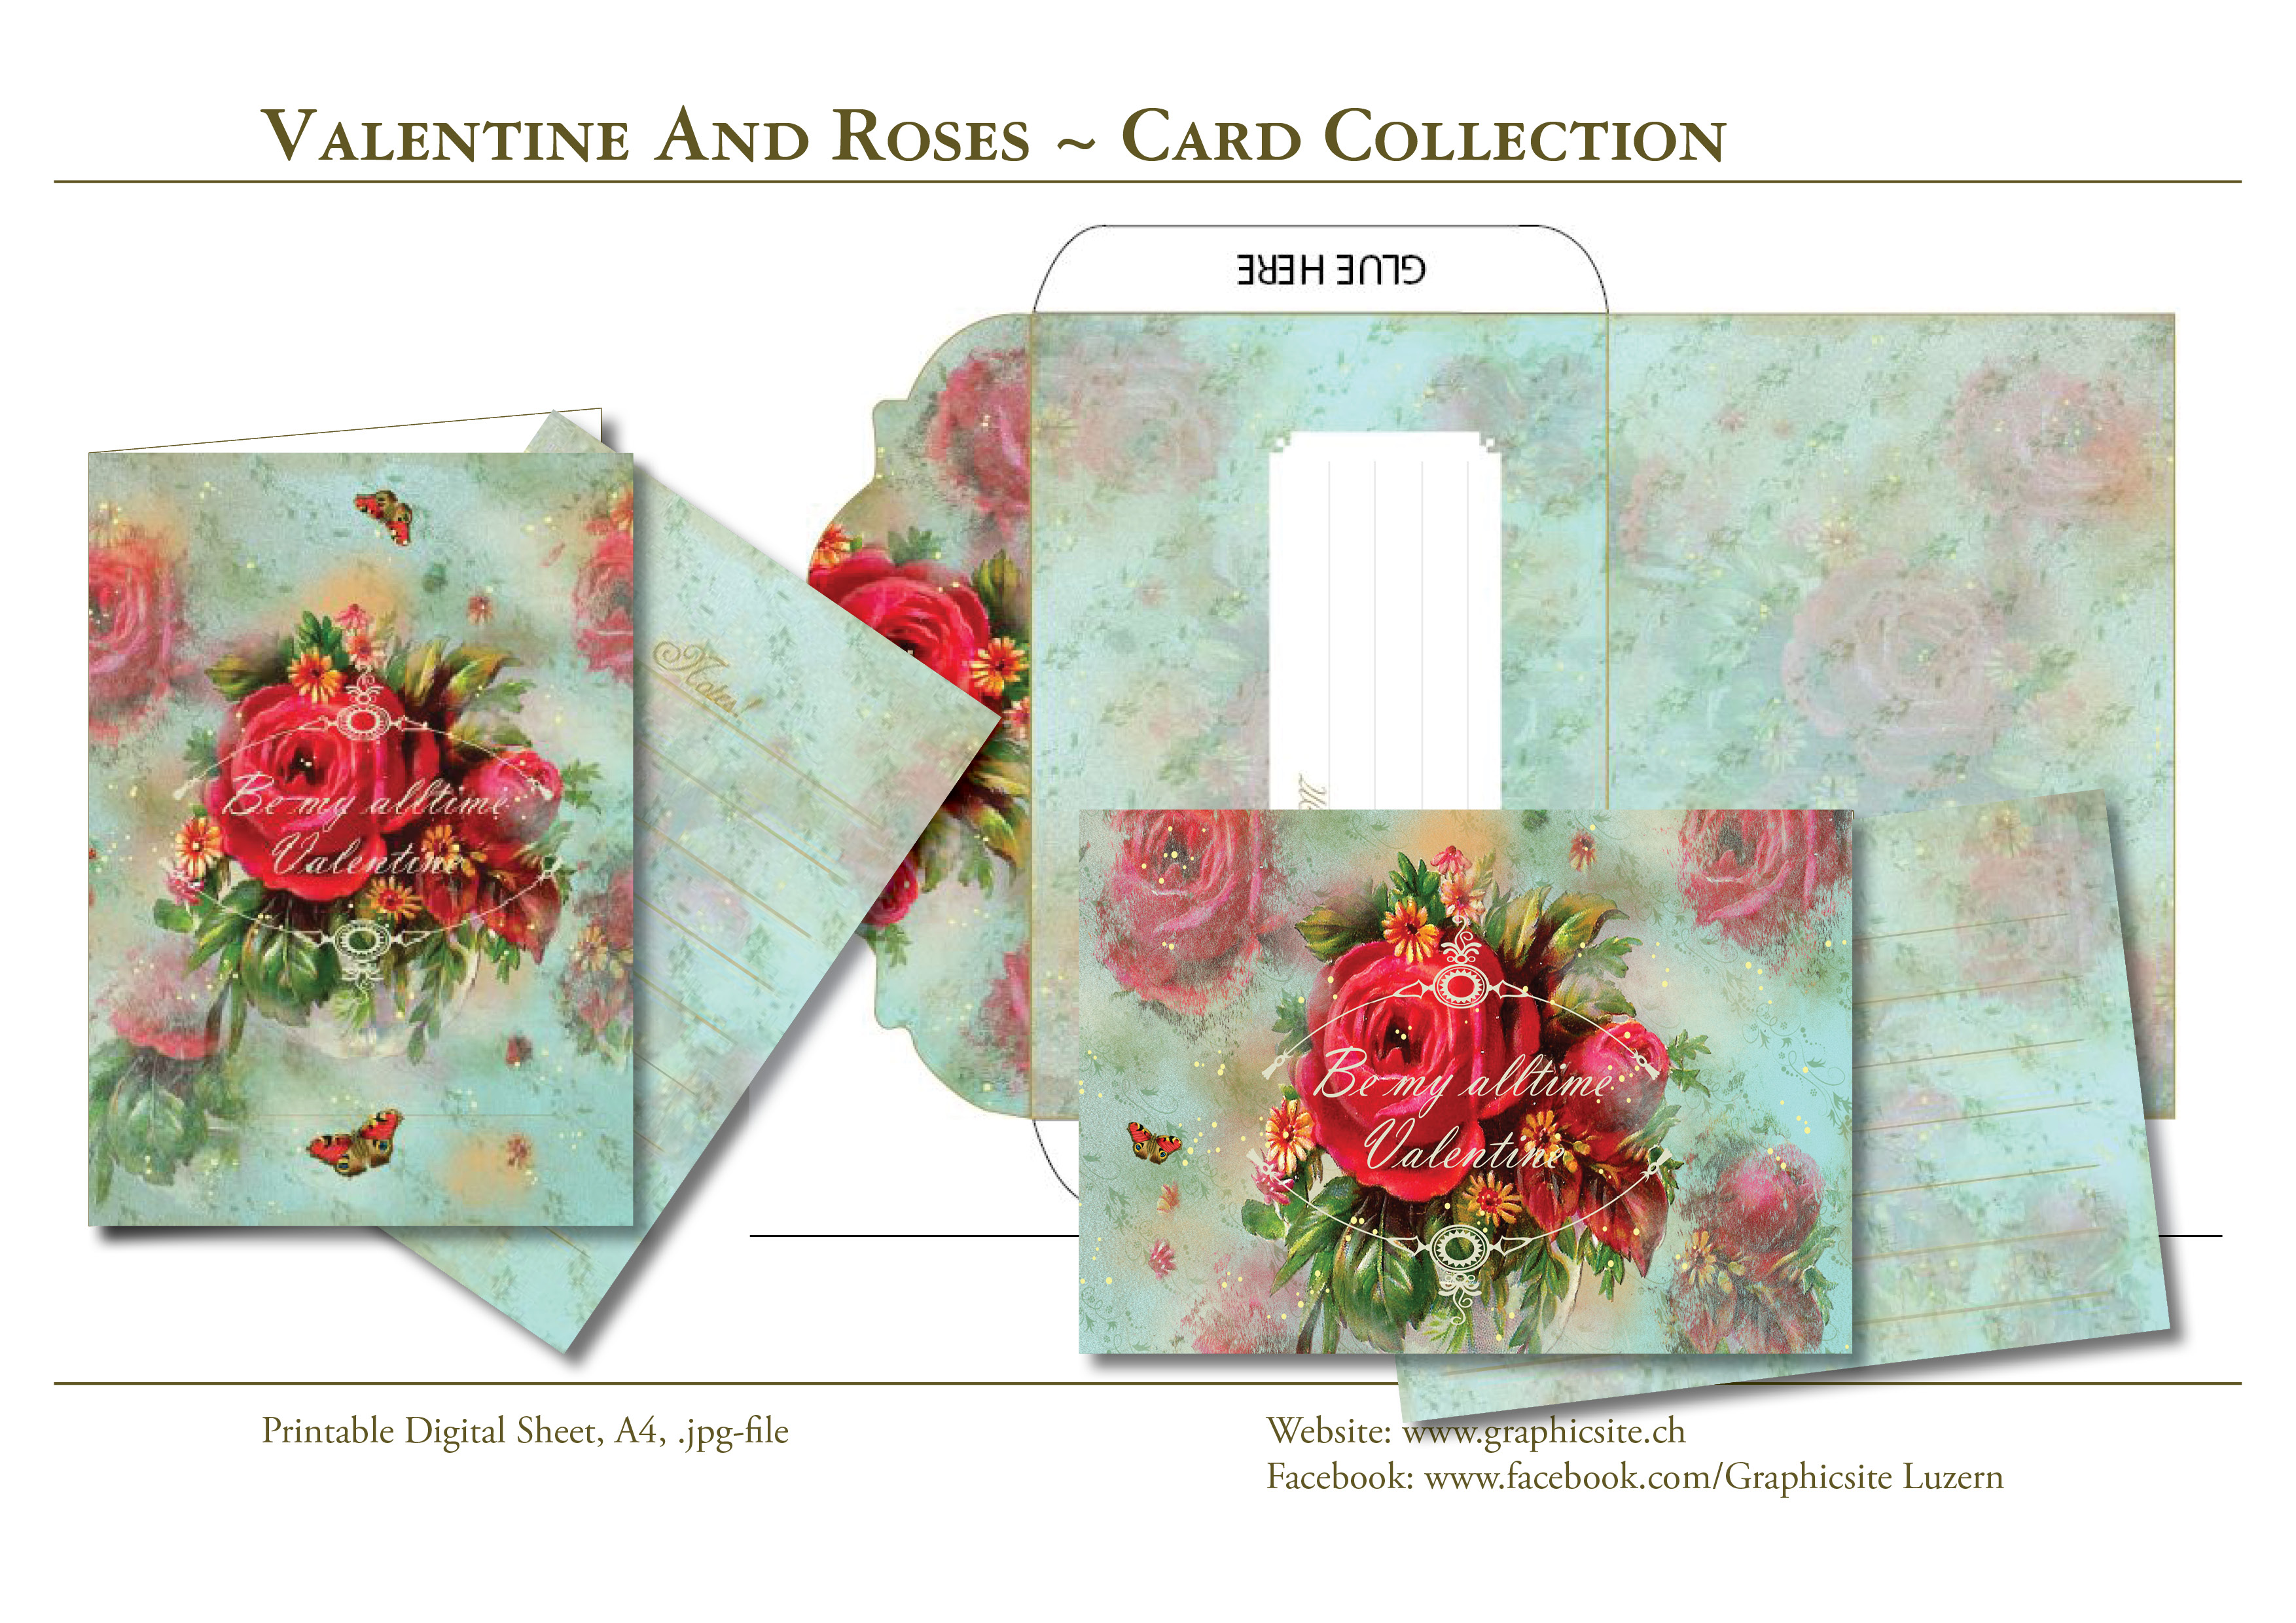 Printable Digital Sheets - DIN A Collection - Valentine And Roses - #cards, #greetingcards, #valentinecards, #envelope, #love, #wedding, #engagement,